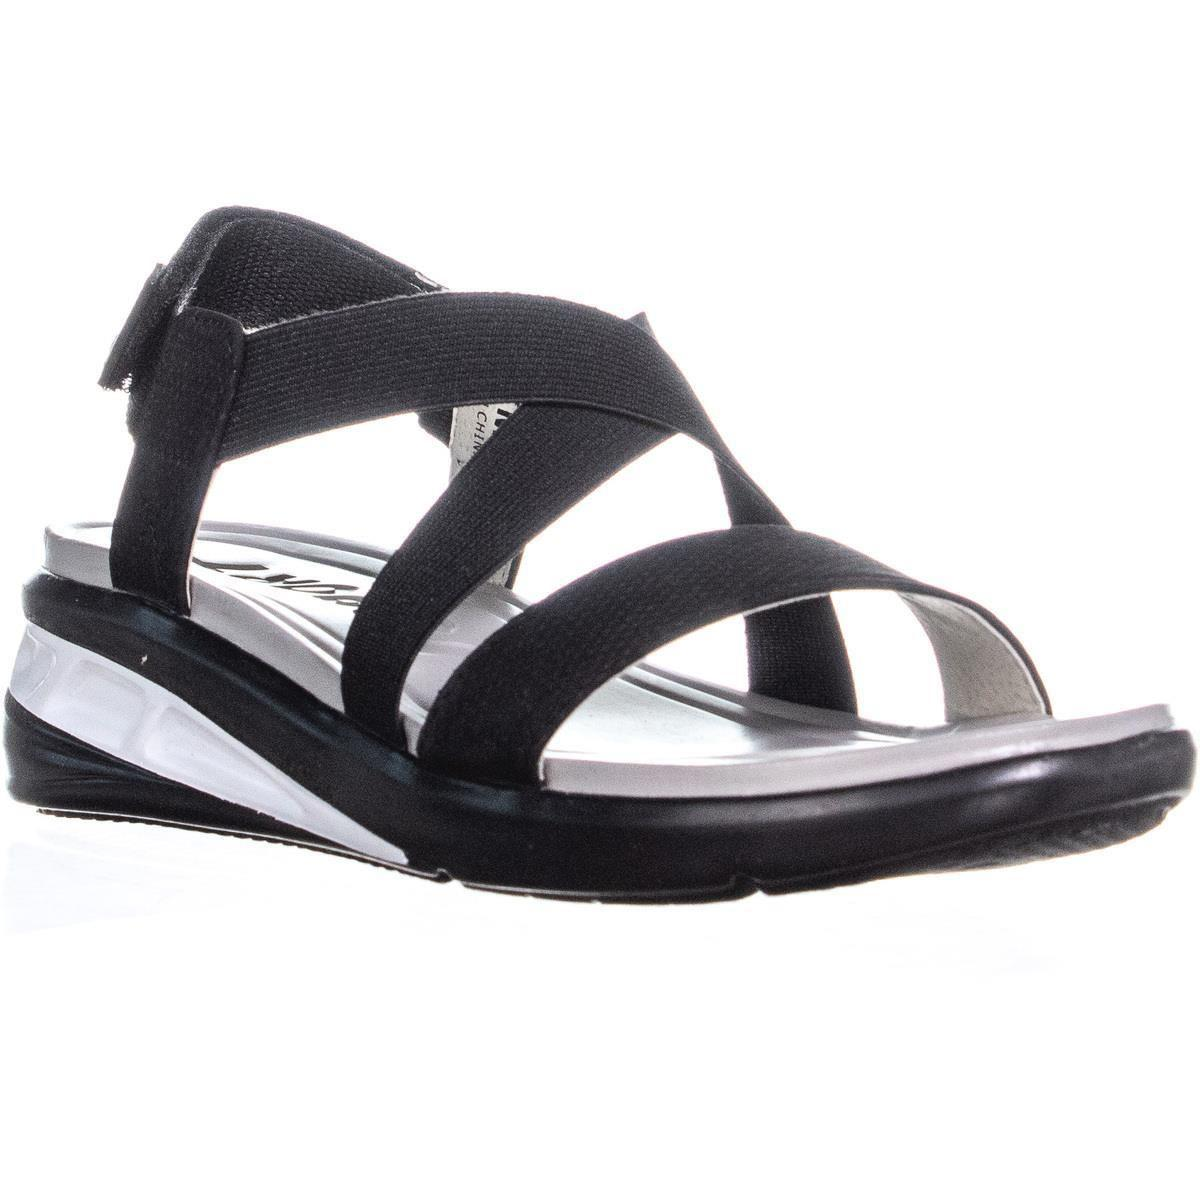 619542d85a3 Jambu. Women s Jsport By Sunny Strappy Wedge Sandals ...